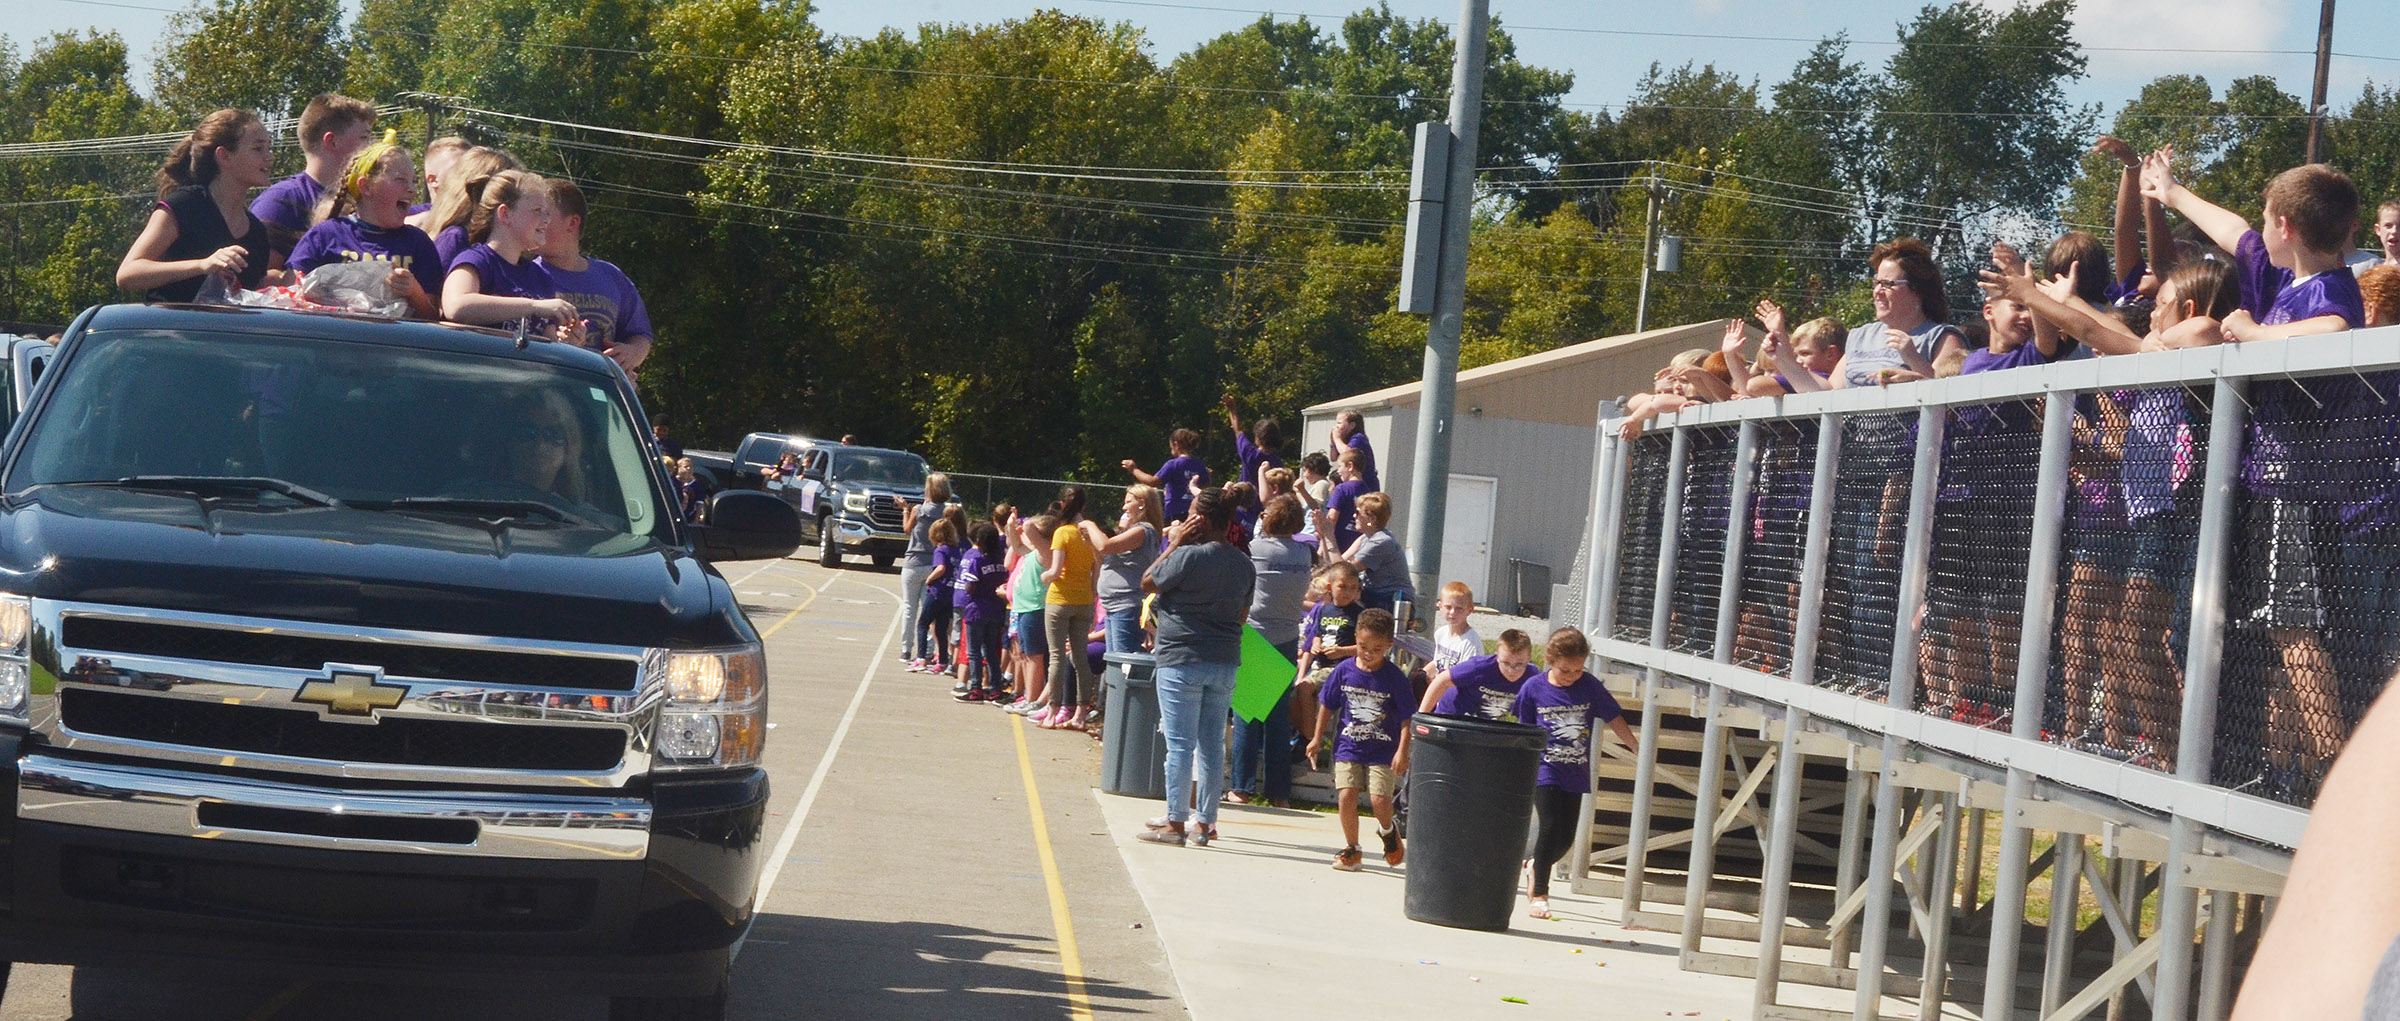 CES students wave to those in the parade.